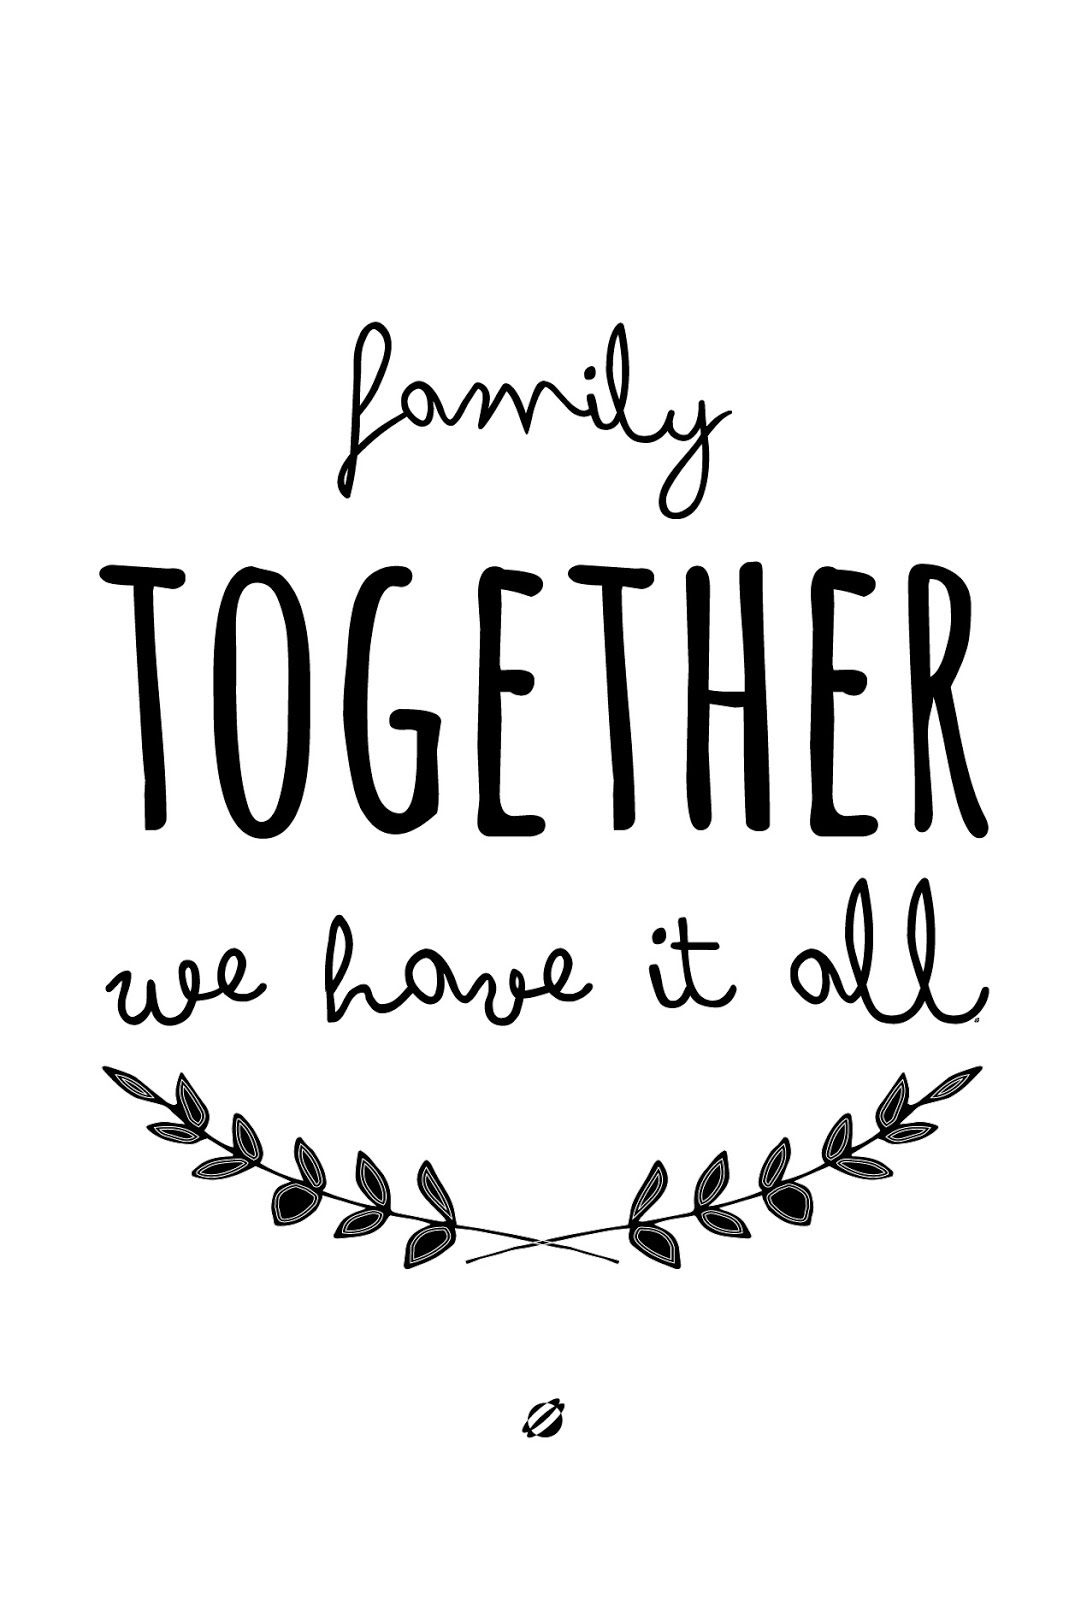 Famous Quotes About Family Print This One On Any Colour Paper  #lostbumblebee ©2013 #together